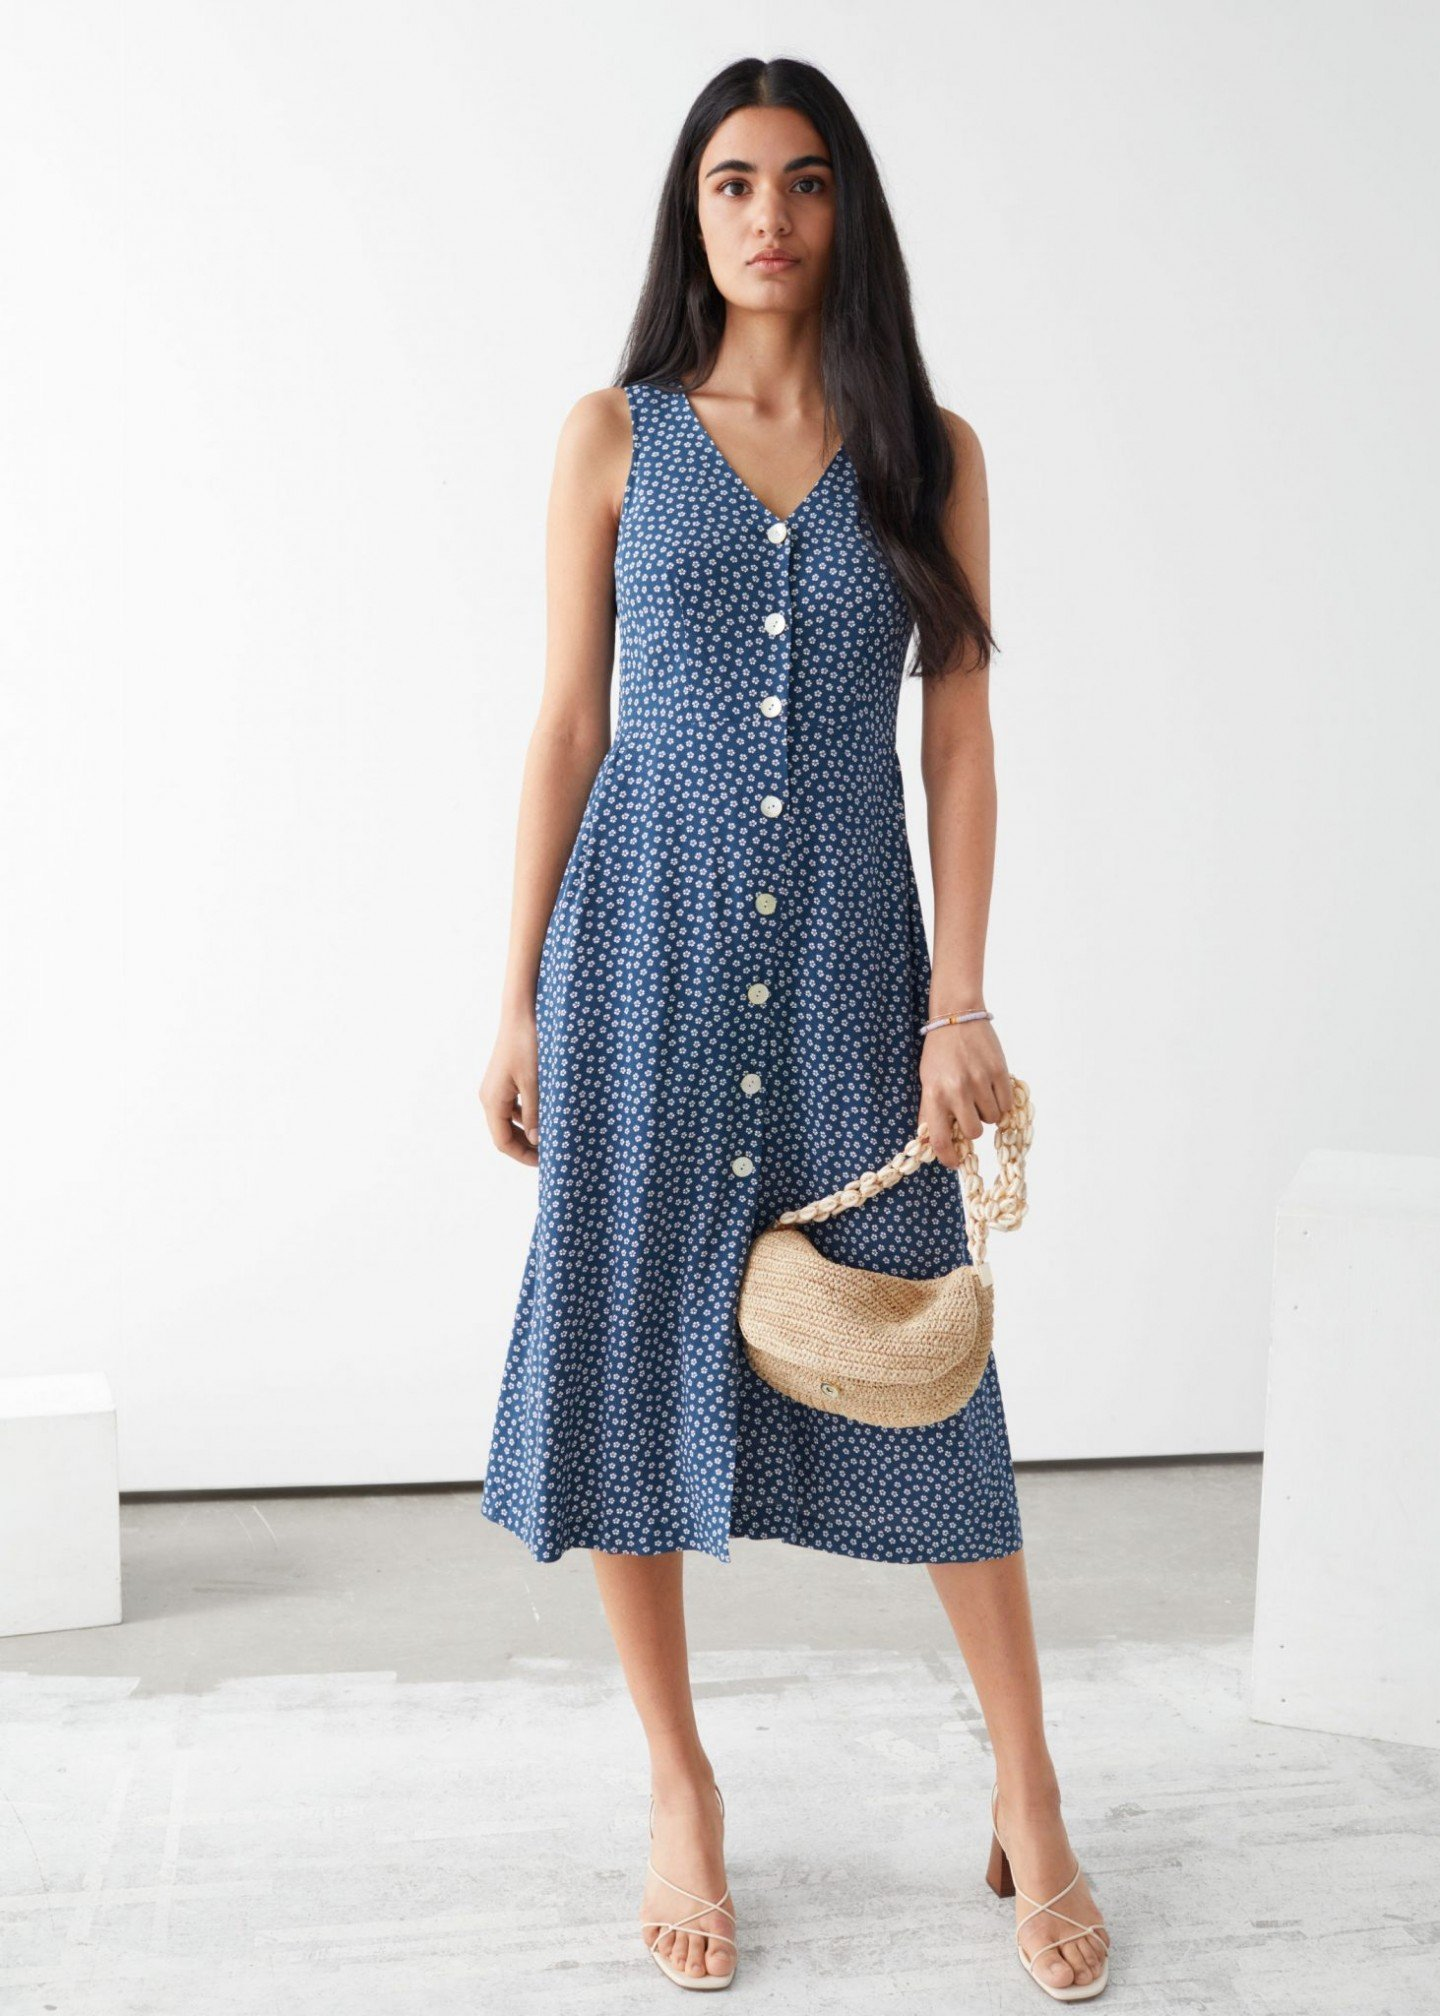 & OTHER STORIES Sleeveless Button Up Midi Dress